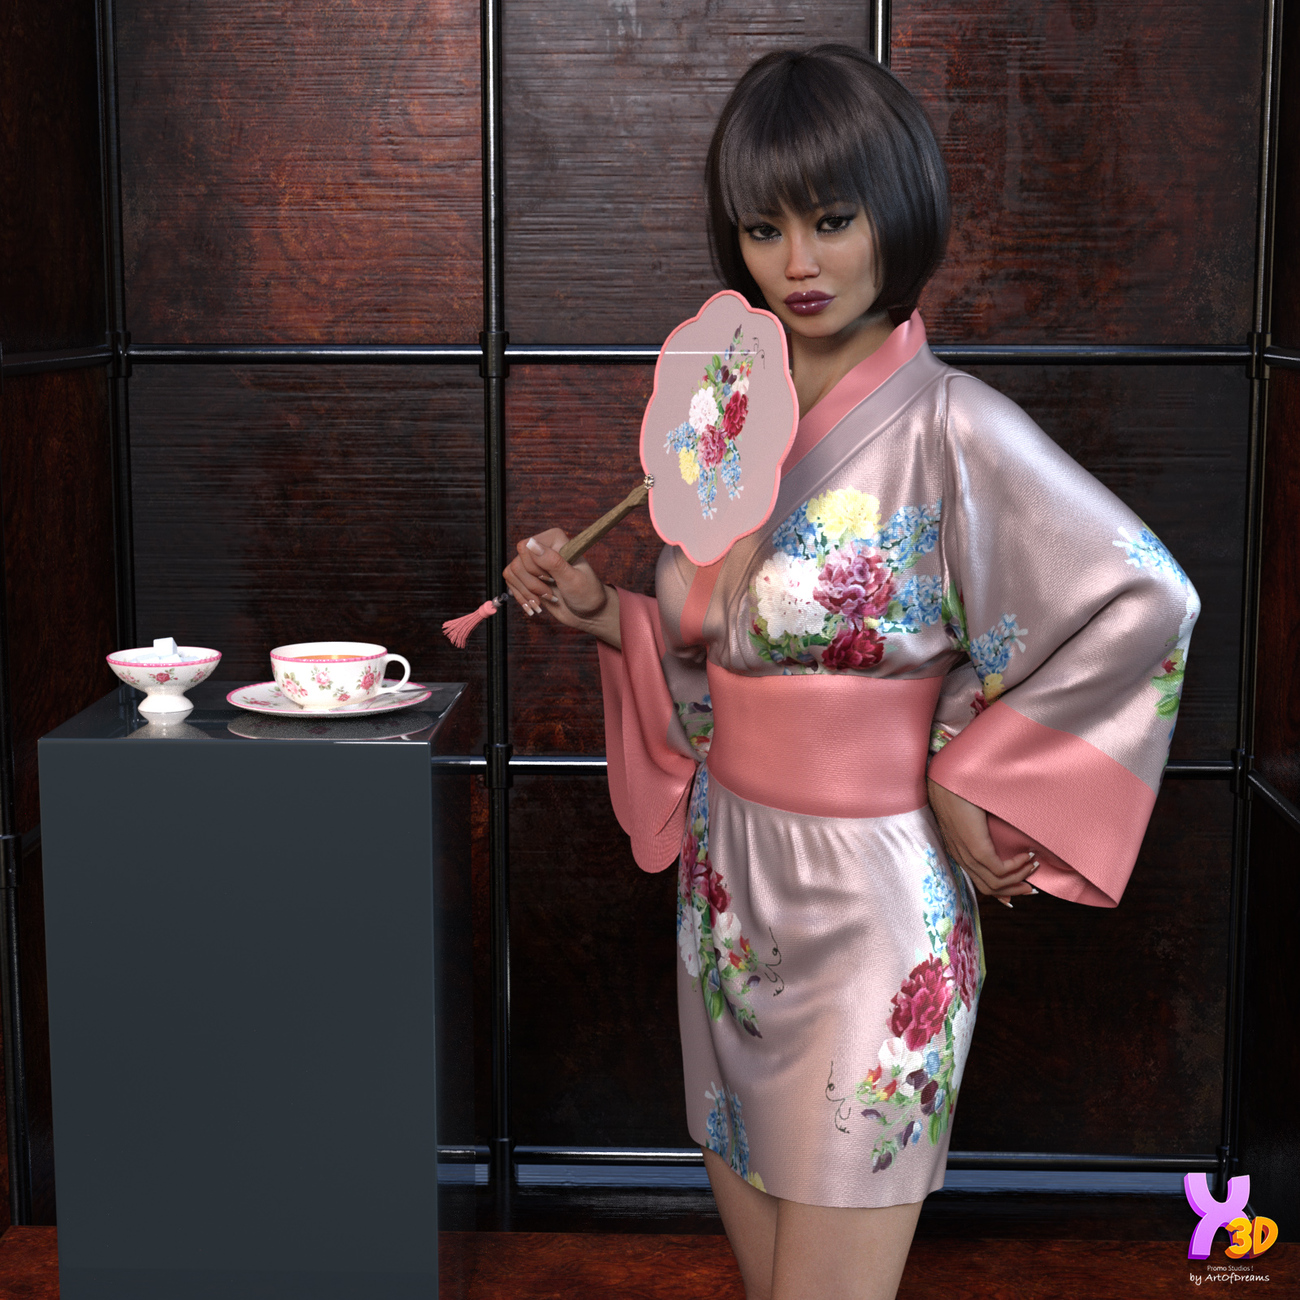 dforce Kimono Lingerie for G8F by Fefecoolyellow by ArtOfDreams